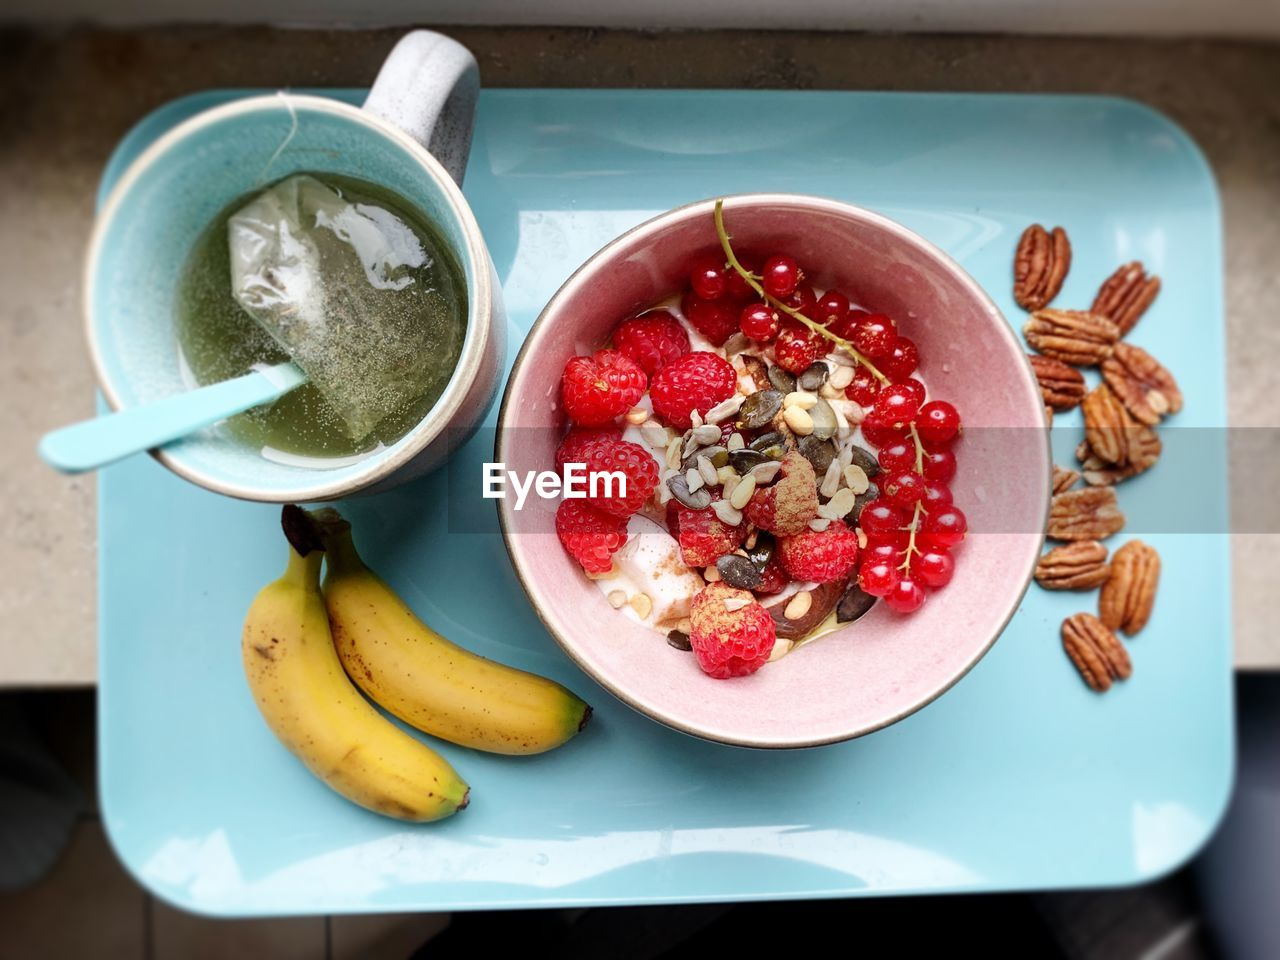 food and drink, food, healthy eating, fruit, freshness, wellbeing, table, banana, bowl, indoors, still life, ready-to-eat, high angle view, close-up, no people, meal, plate, directly above, eating utensil, serving size, breakfast